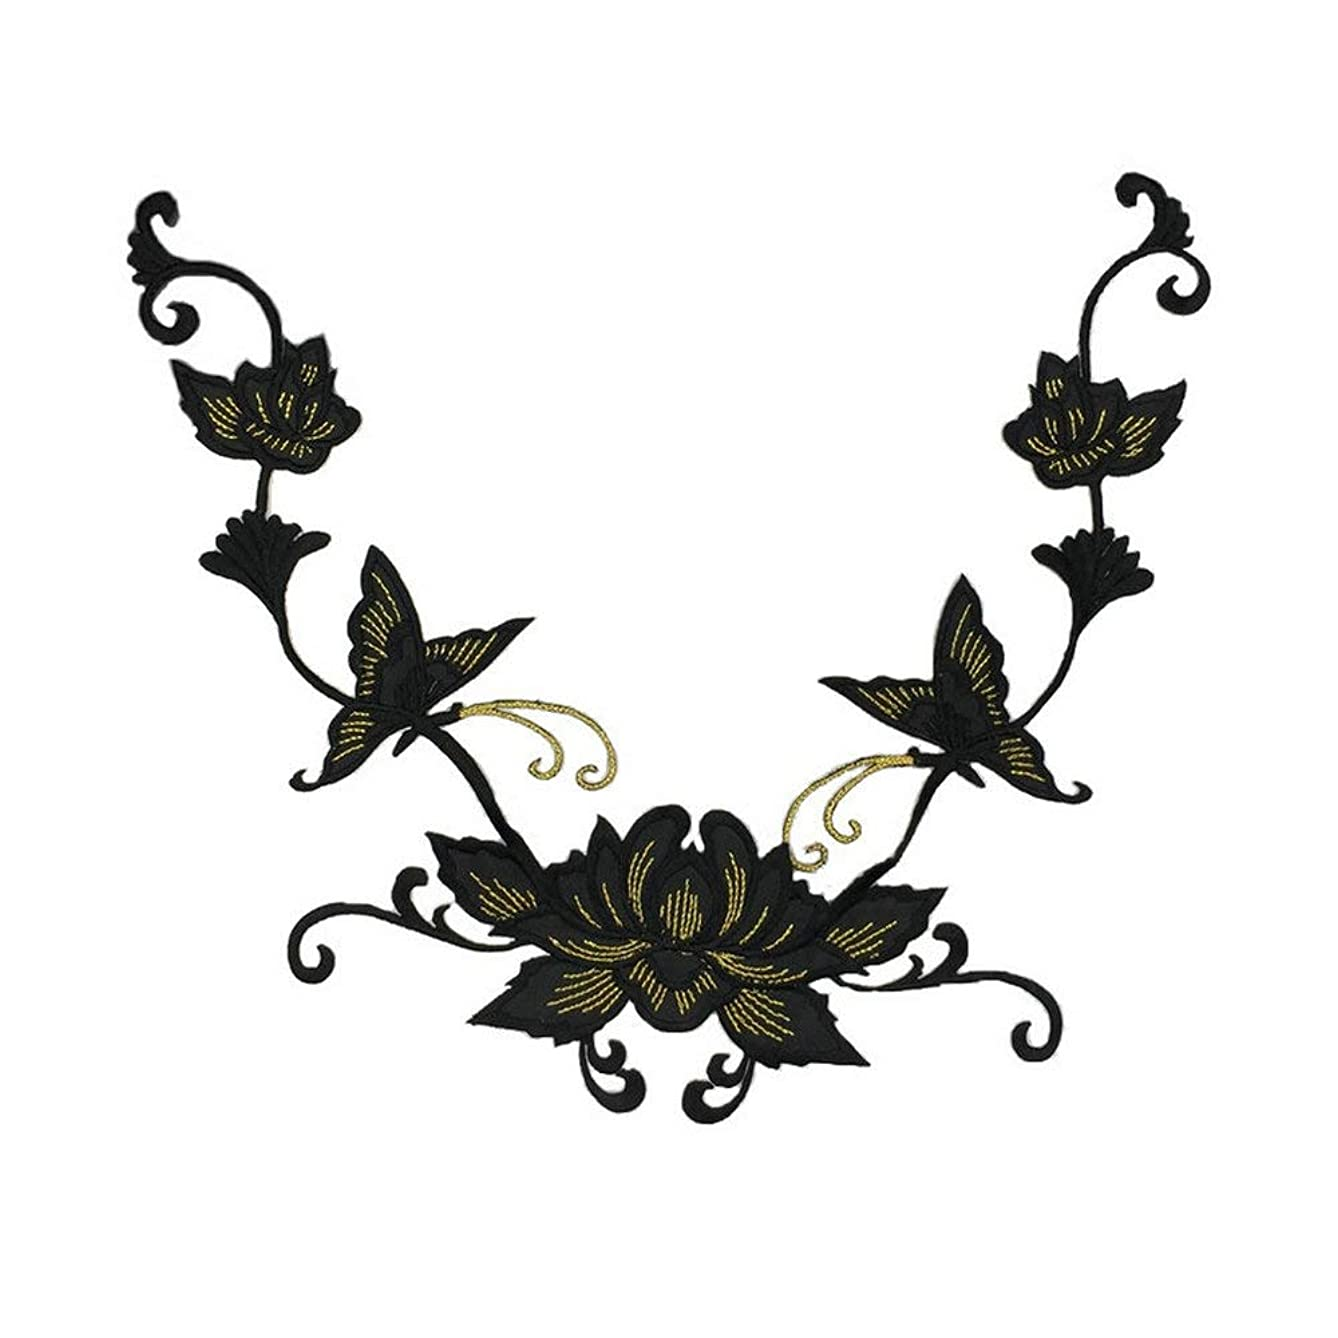 Butterflies Flower Applique Clothing Embroidery Patch Fabric Sticker Iron on Sew on Patch Craft Sewing Repair Embroidered (Black)